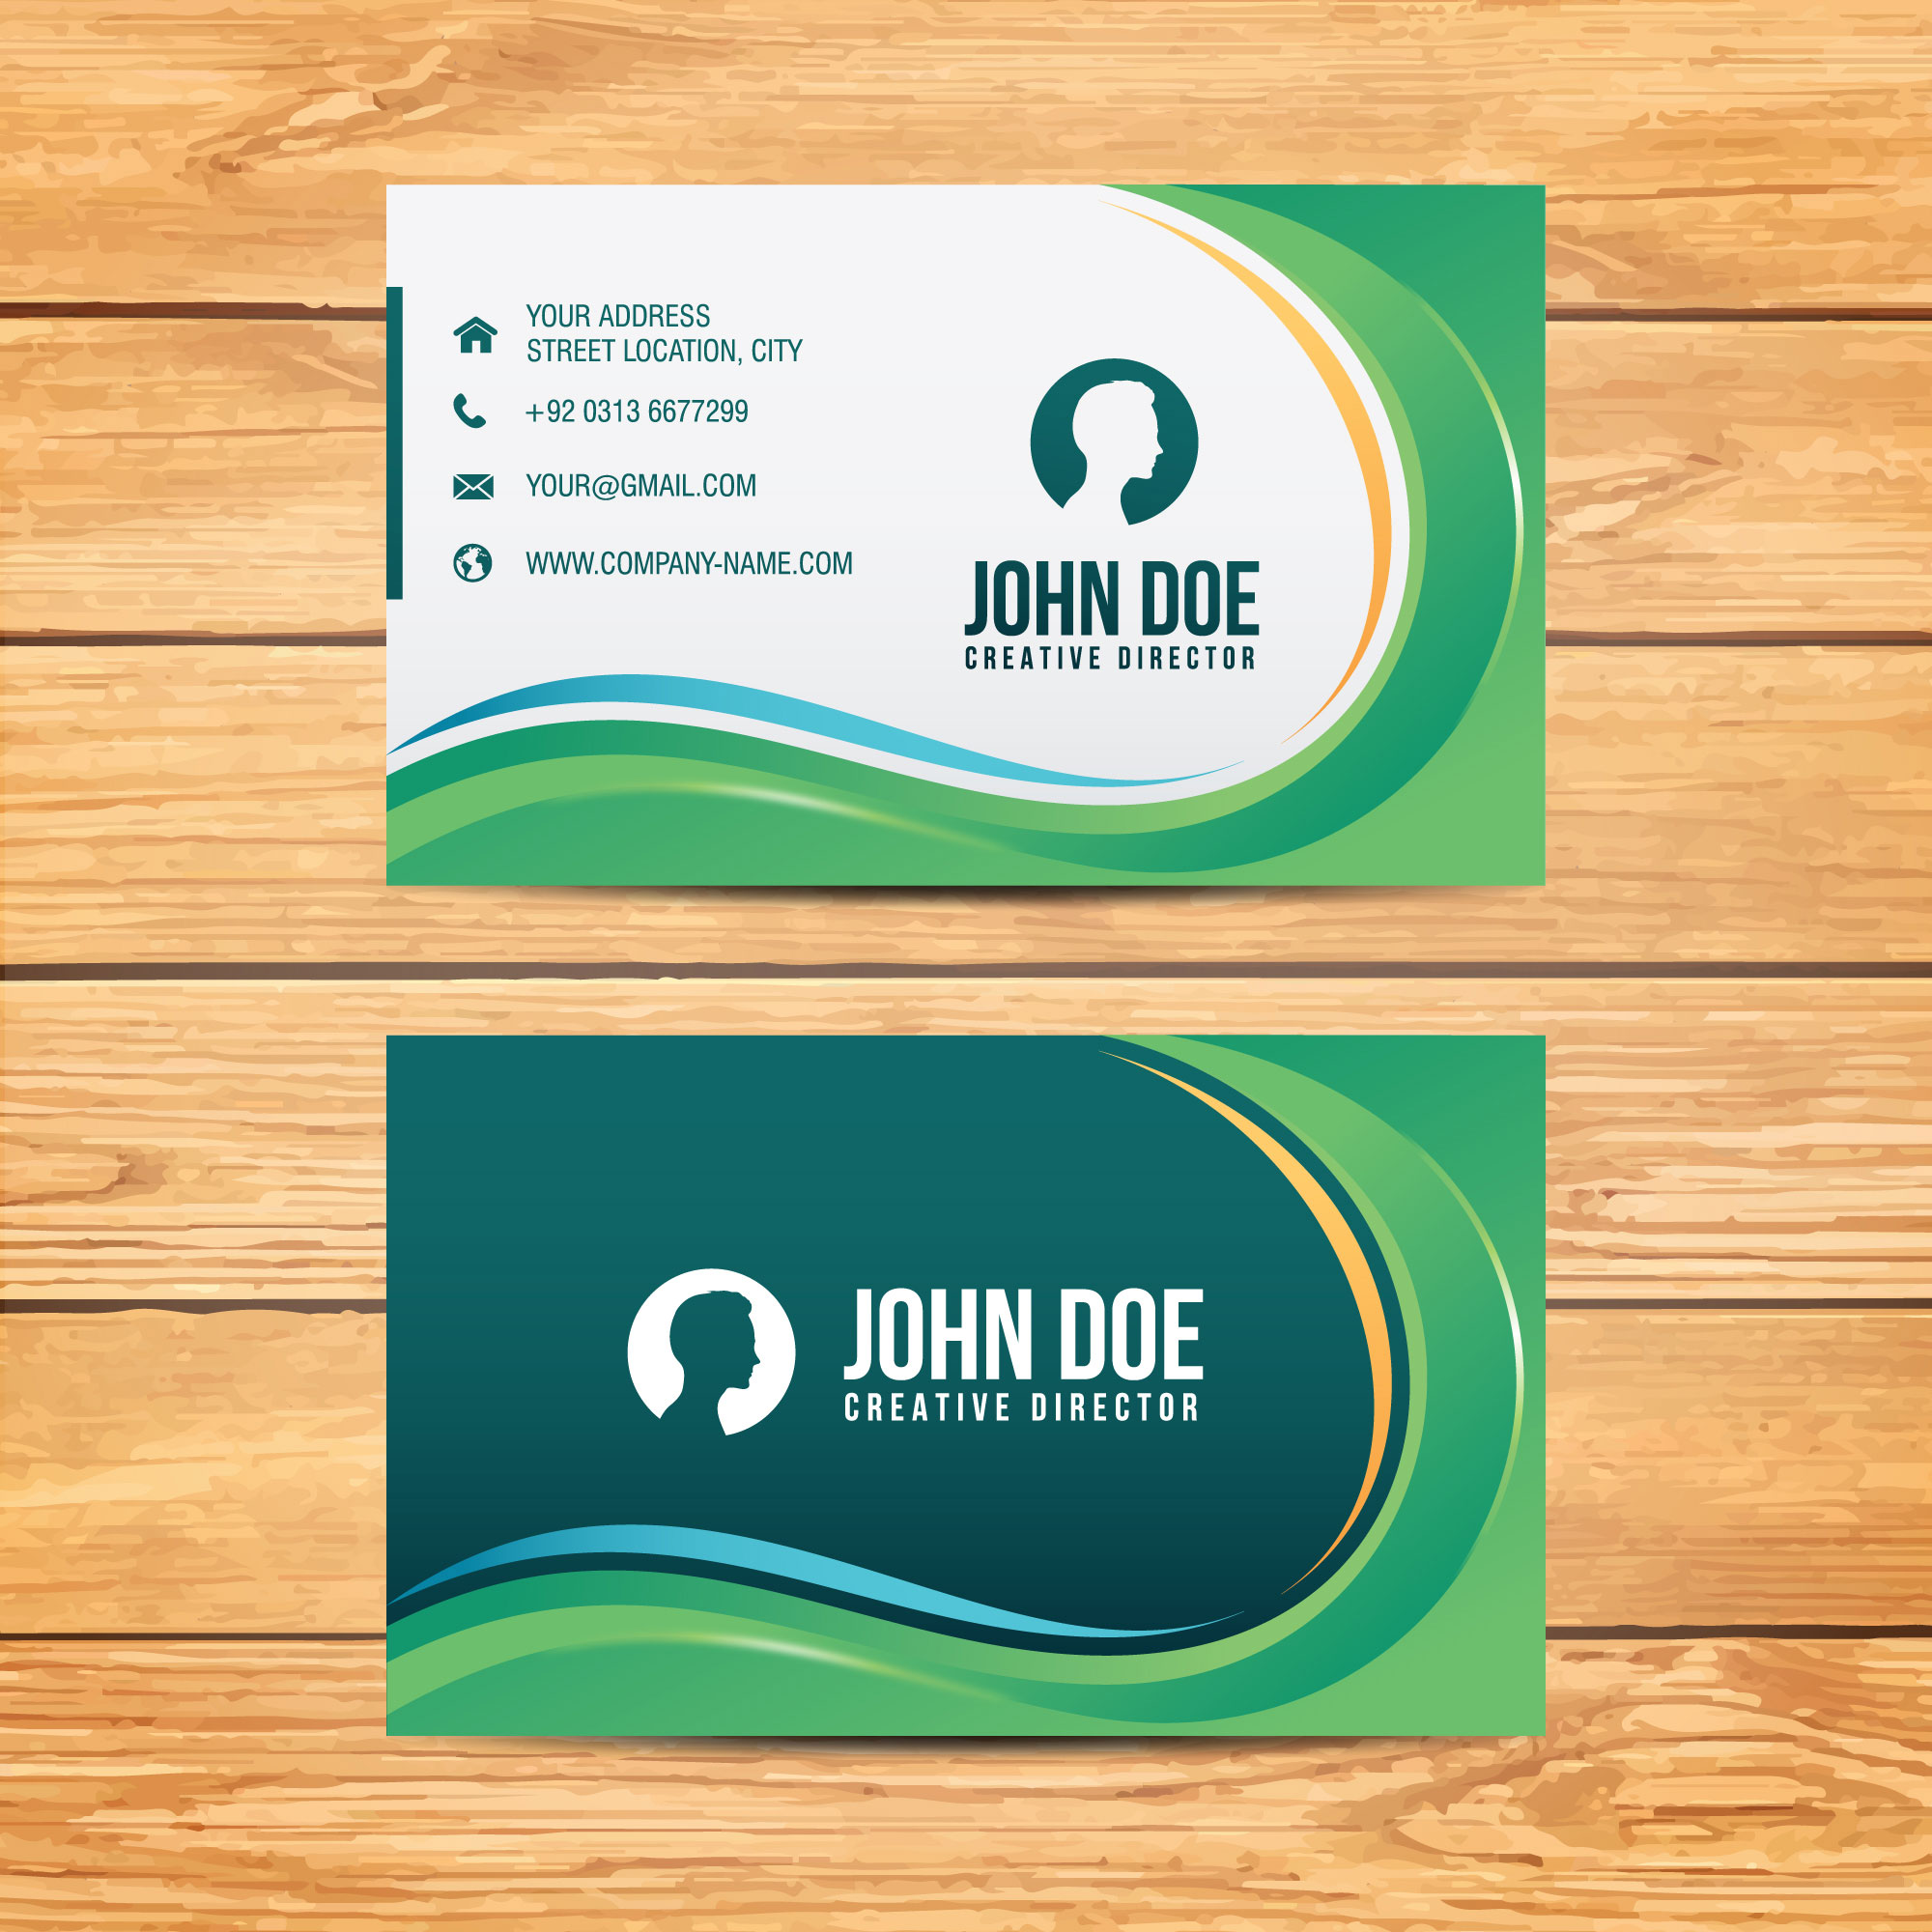 Cadreprographics digital printing in dubai abu dhabi uae business card printing in dubai reheart Gallery